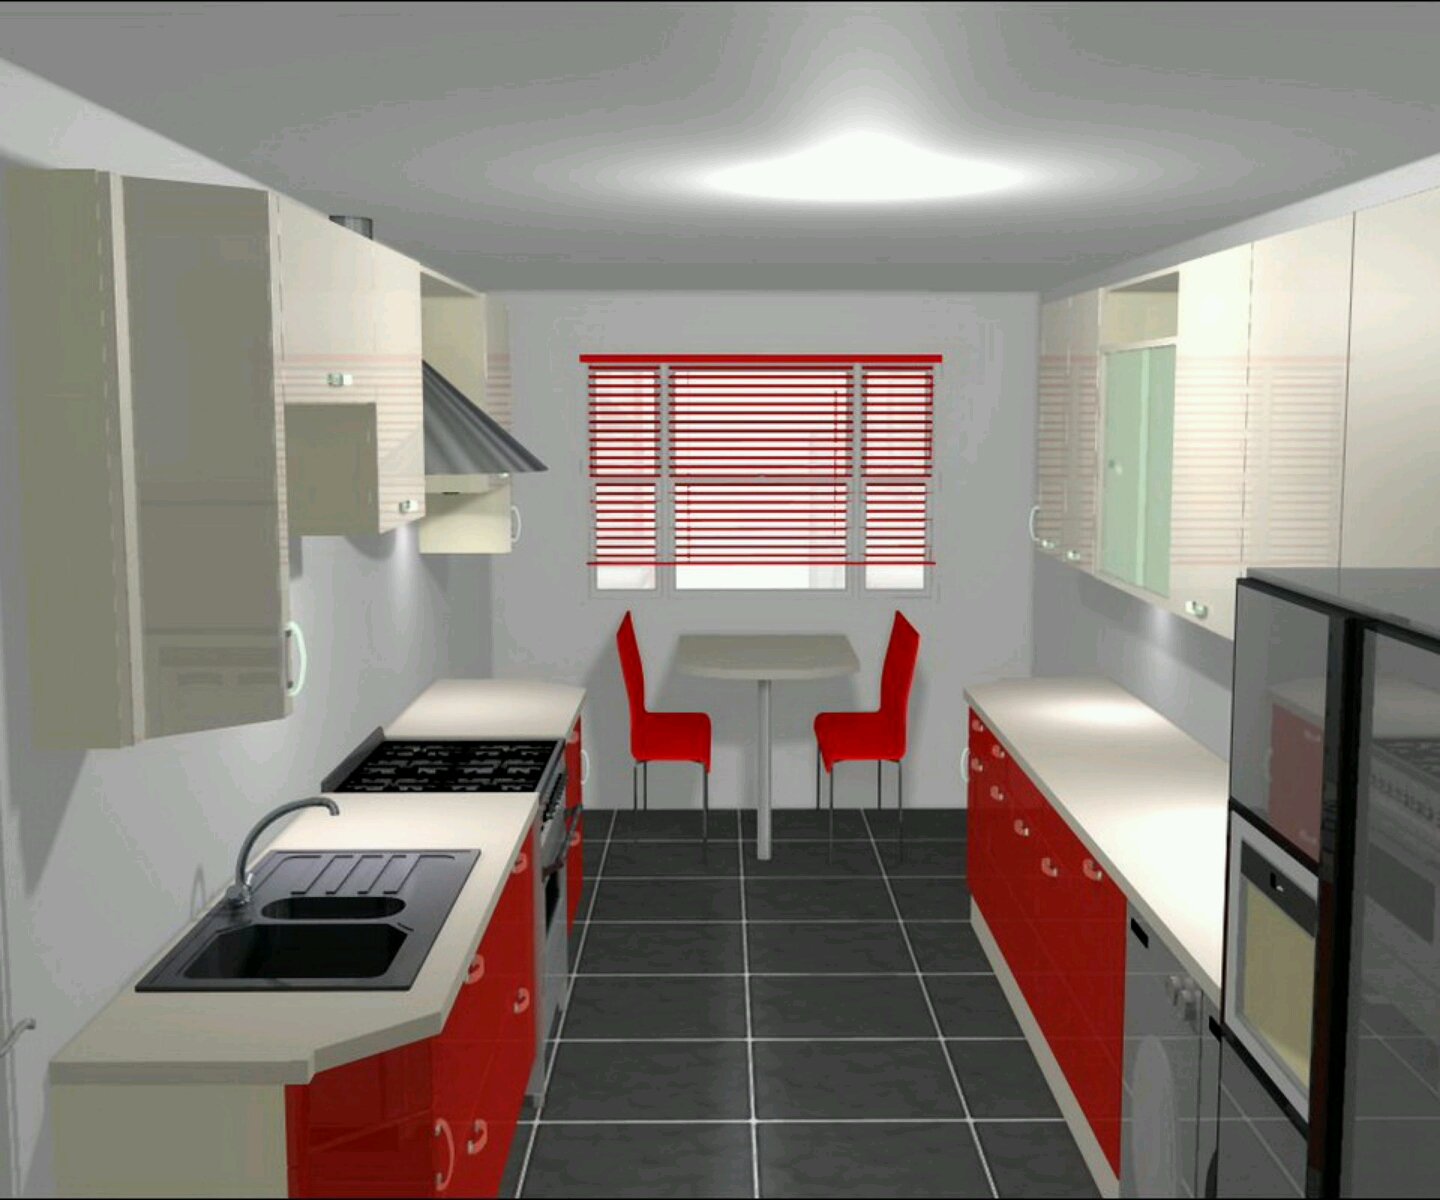 New Home Designs Latest Kitchen Cabinets Designs Modern: New Home Designs Latest.: Modern Home Kitchen Cabinet